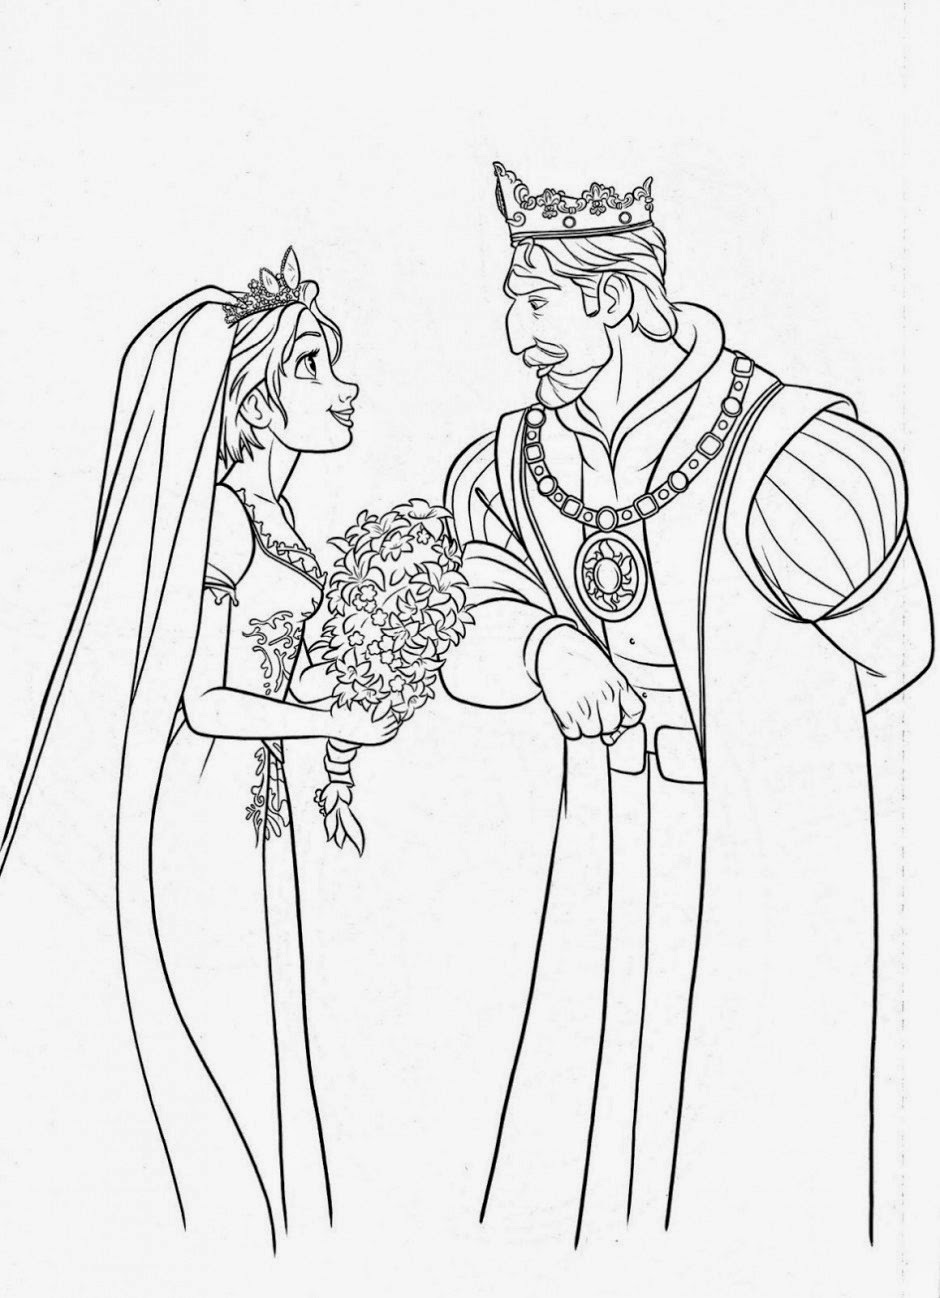 free printable rapunzel coloring pages rapunzel coloring pages to download and print for free rapunzel coloring free pages printable